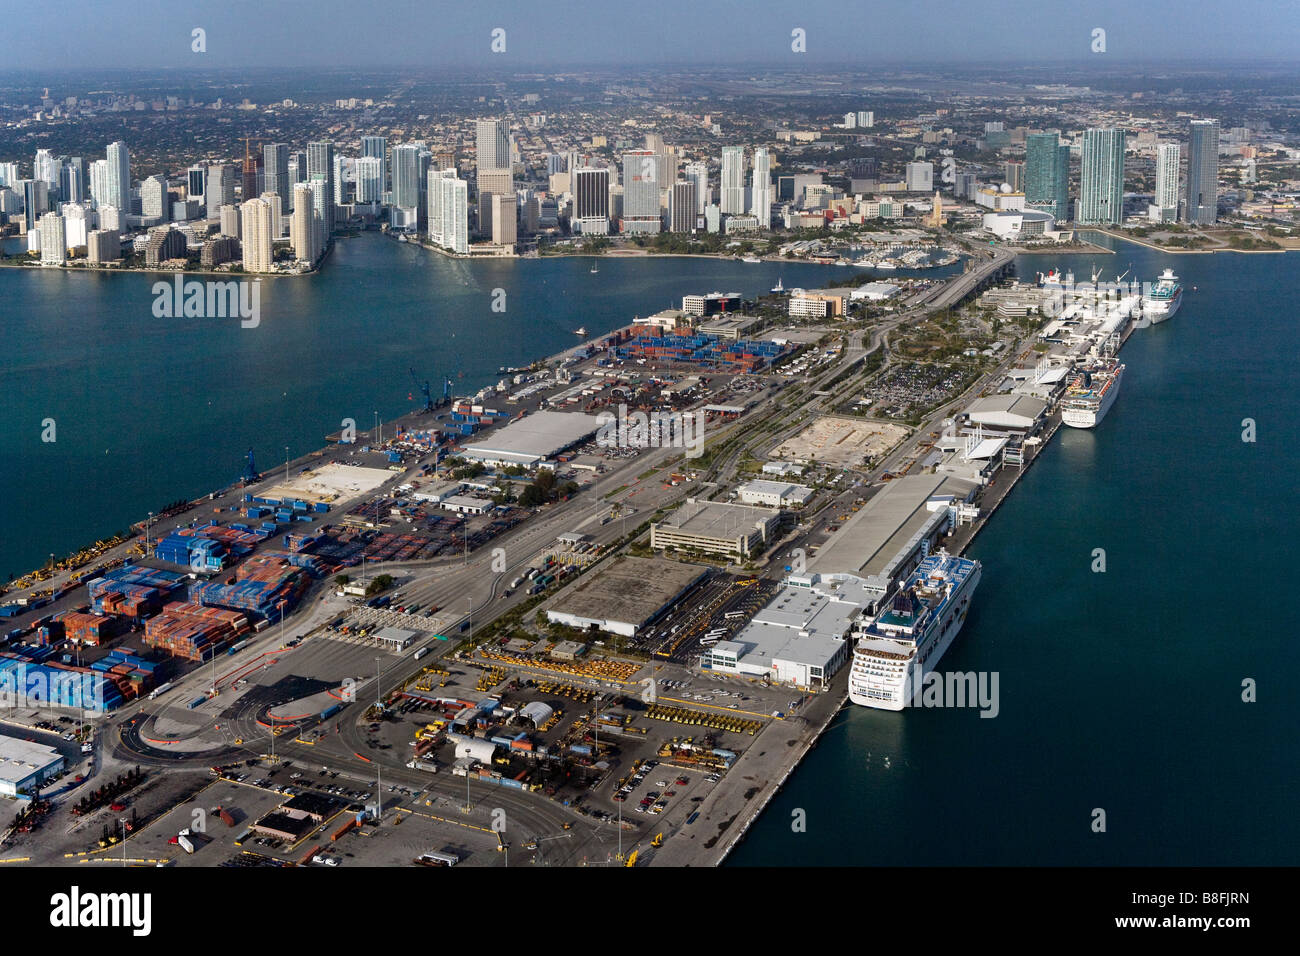 aerial view above Dodge Island Port of Miami Biscayne Bay Florida - Stock Image